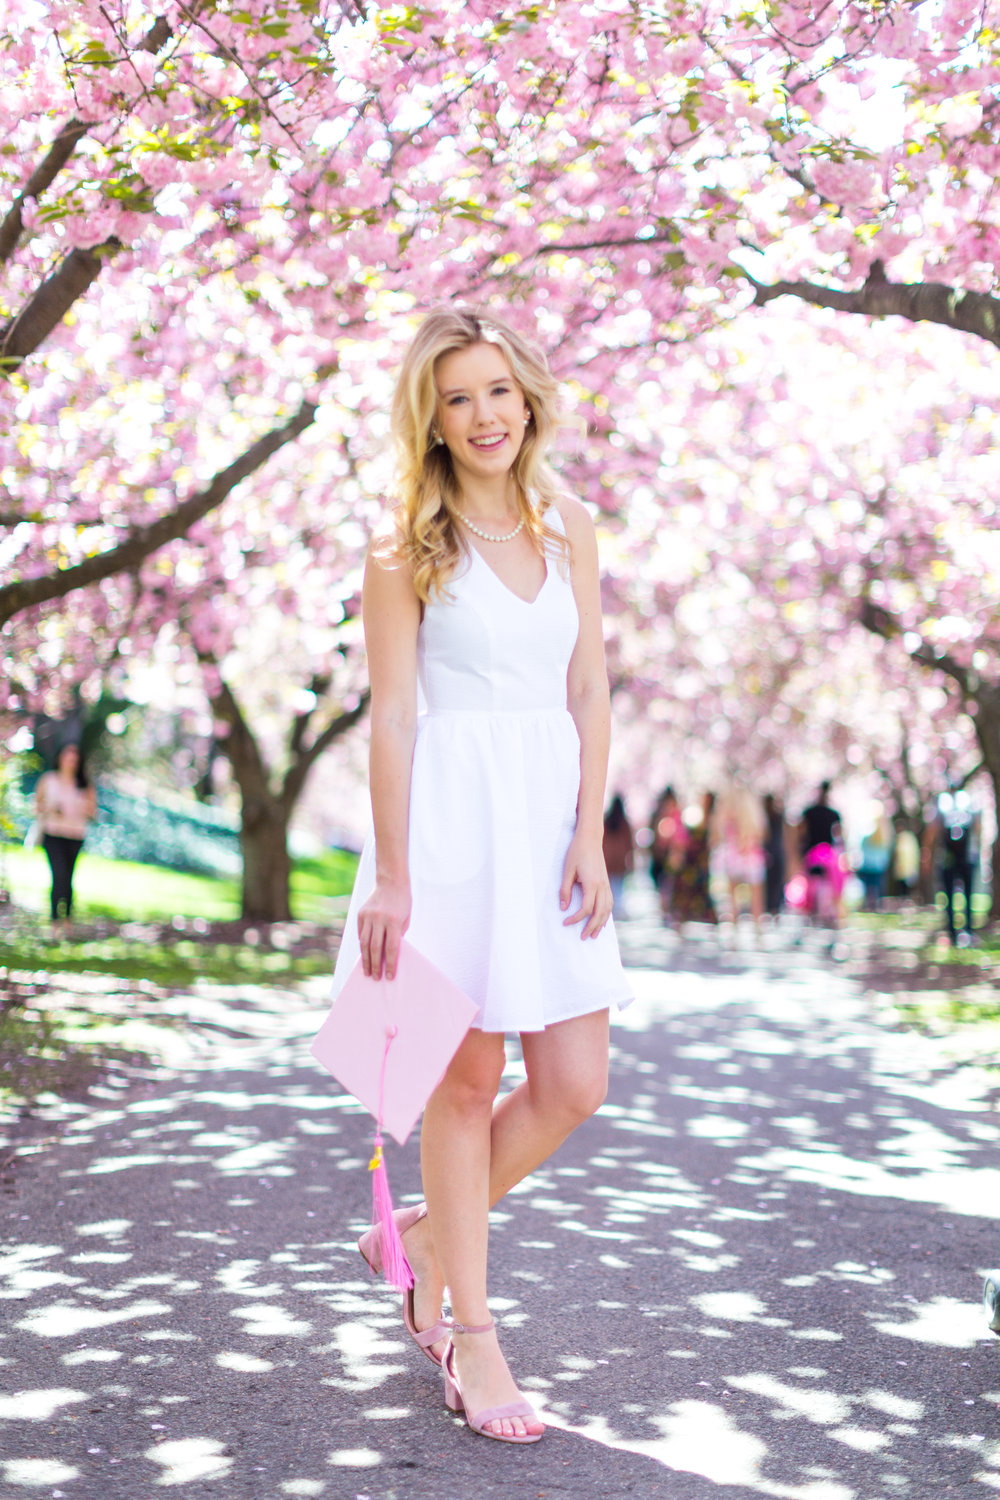 White Graduation Dress Spring Pink Cherry Blossoms NYC.jpg